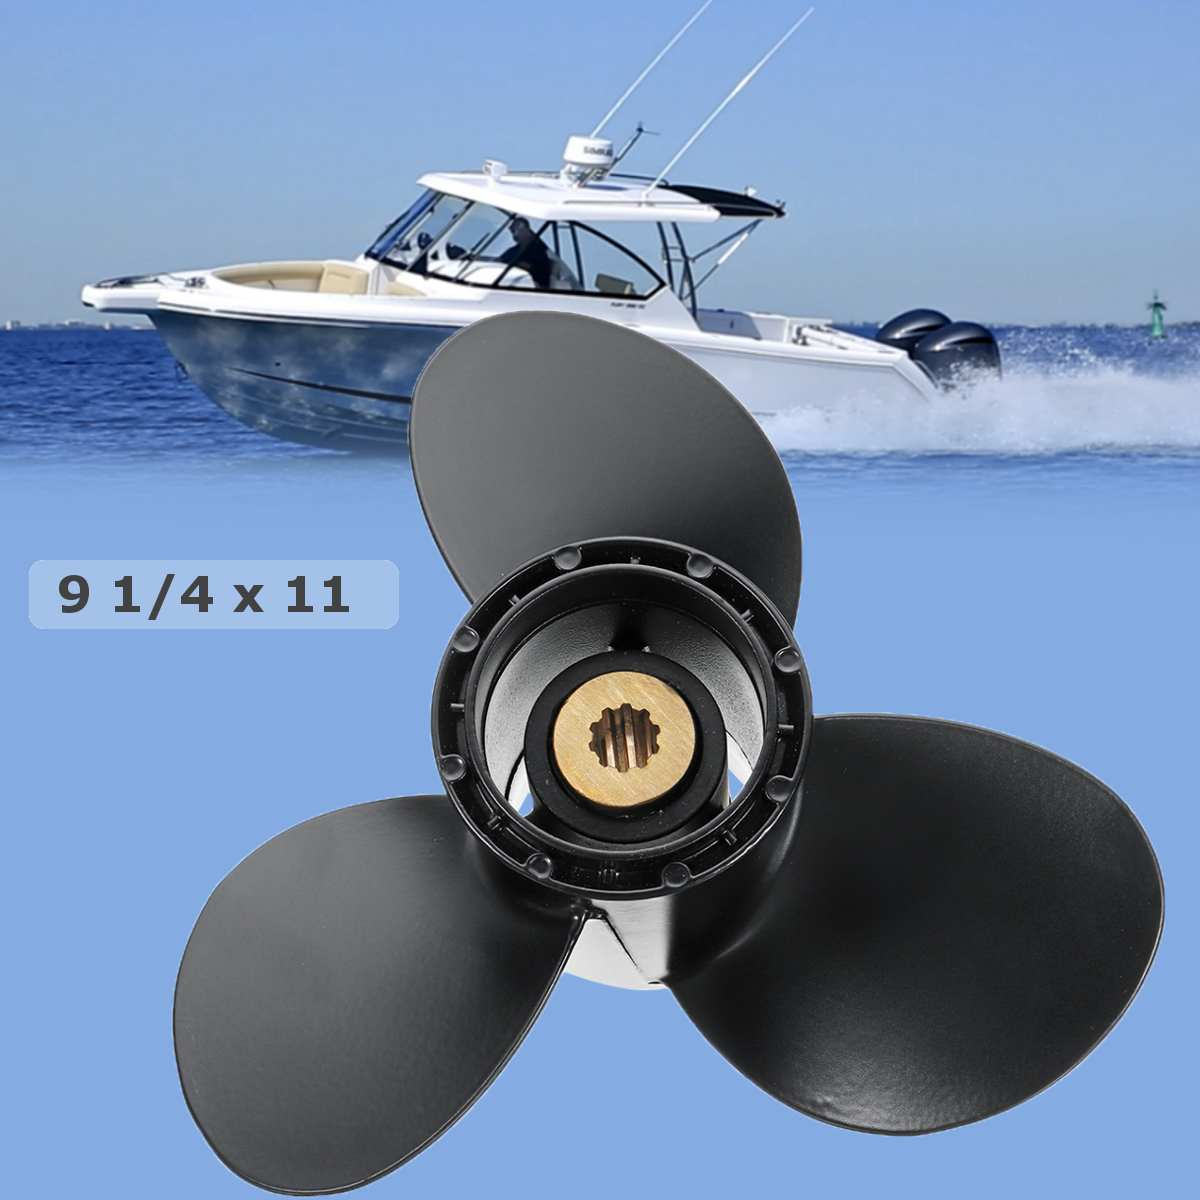 Boat Propeller Outboard Suzuki 9 For 58100-93743-019 Aluminium-Alloy Black 3-blades/10/Spline/Tooth